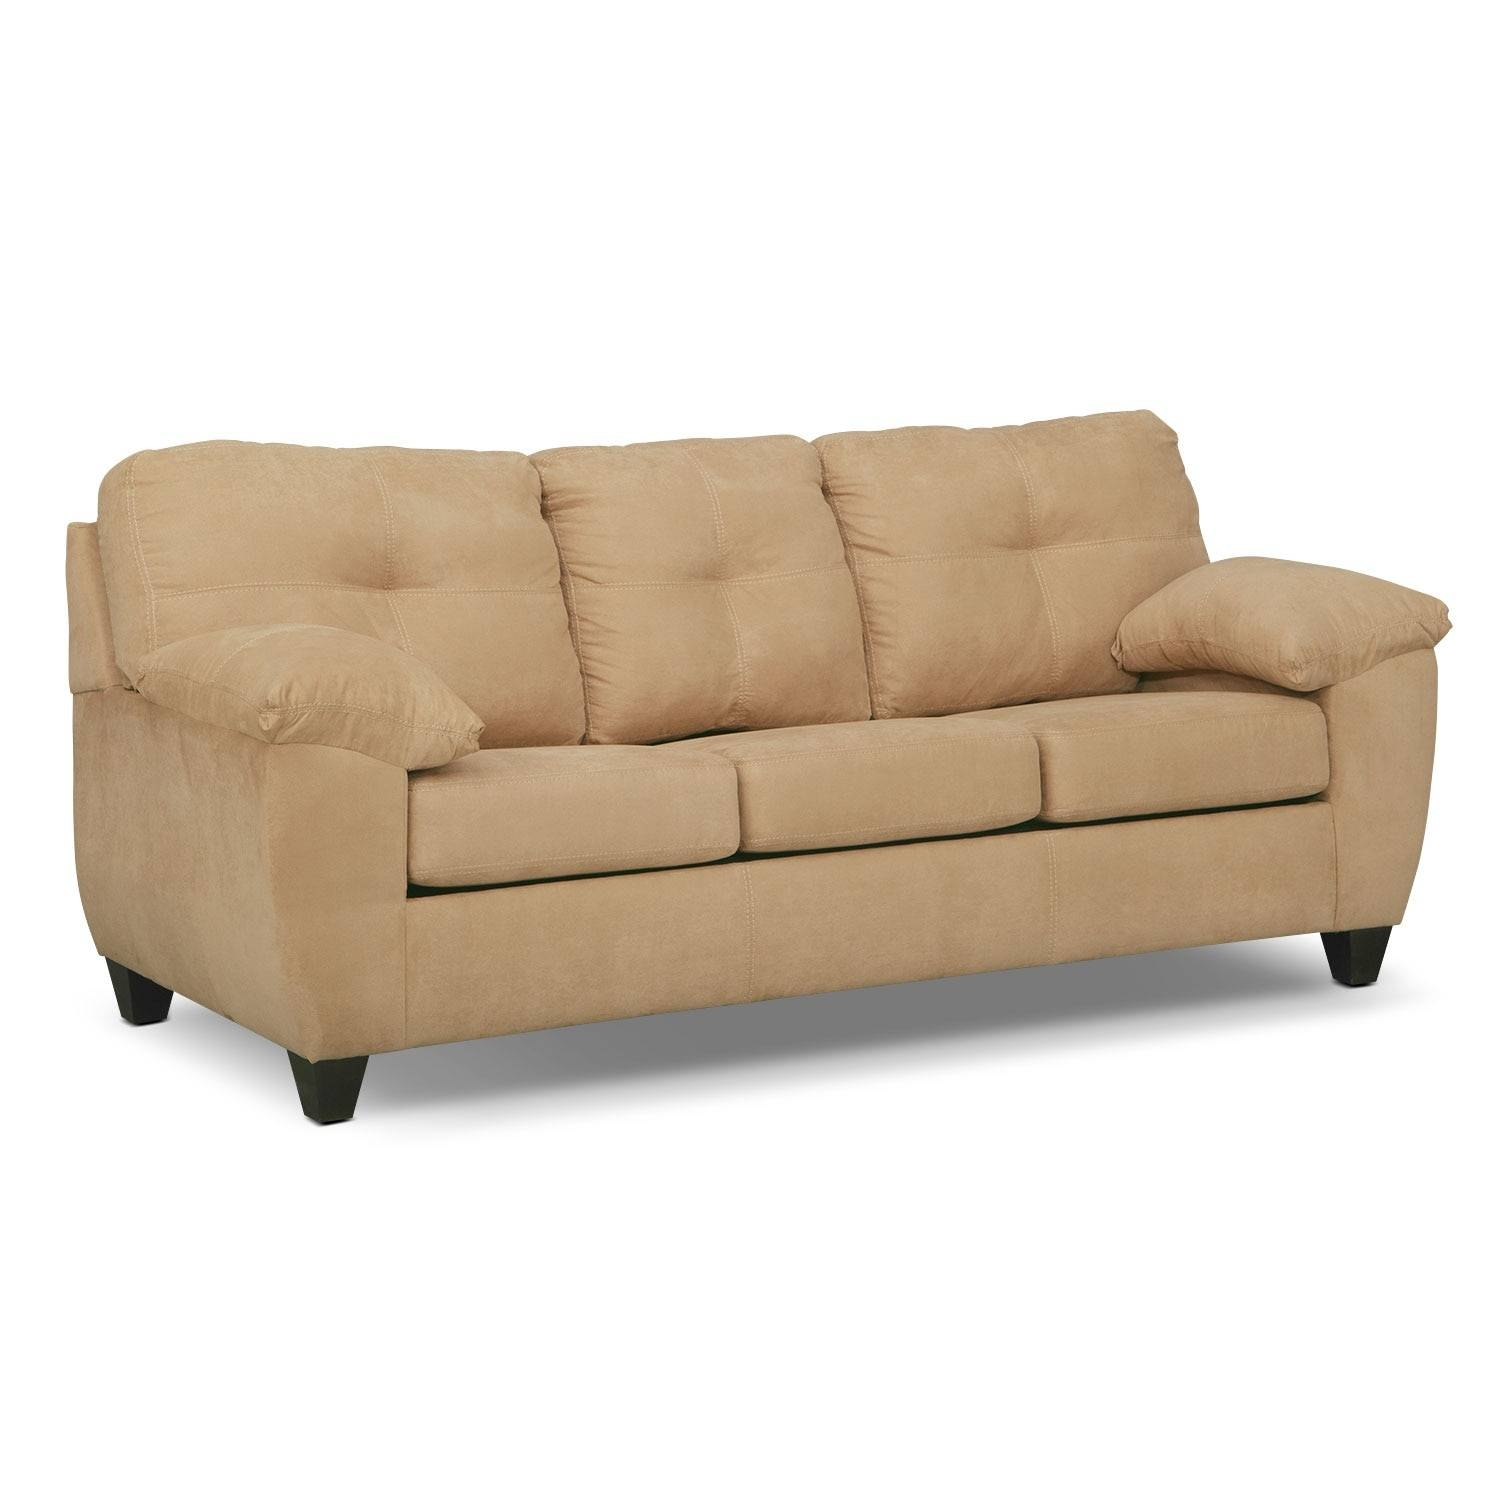 Sleeper Sofas | Value City Furniture | Value City Furniture Throughout City Sofa Beds (View 18 of 30)